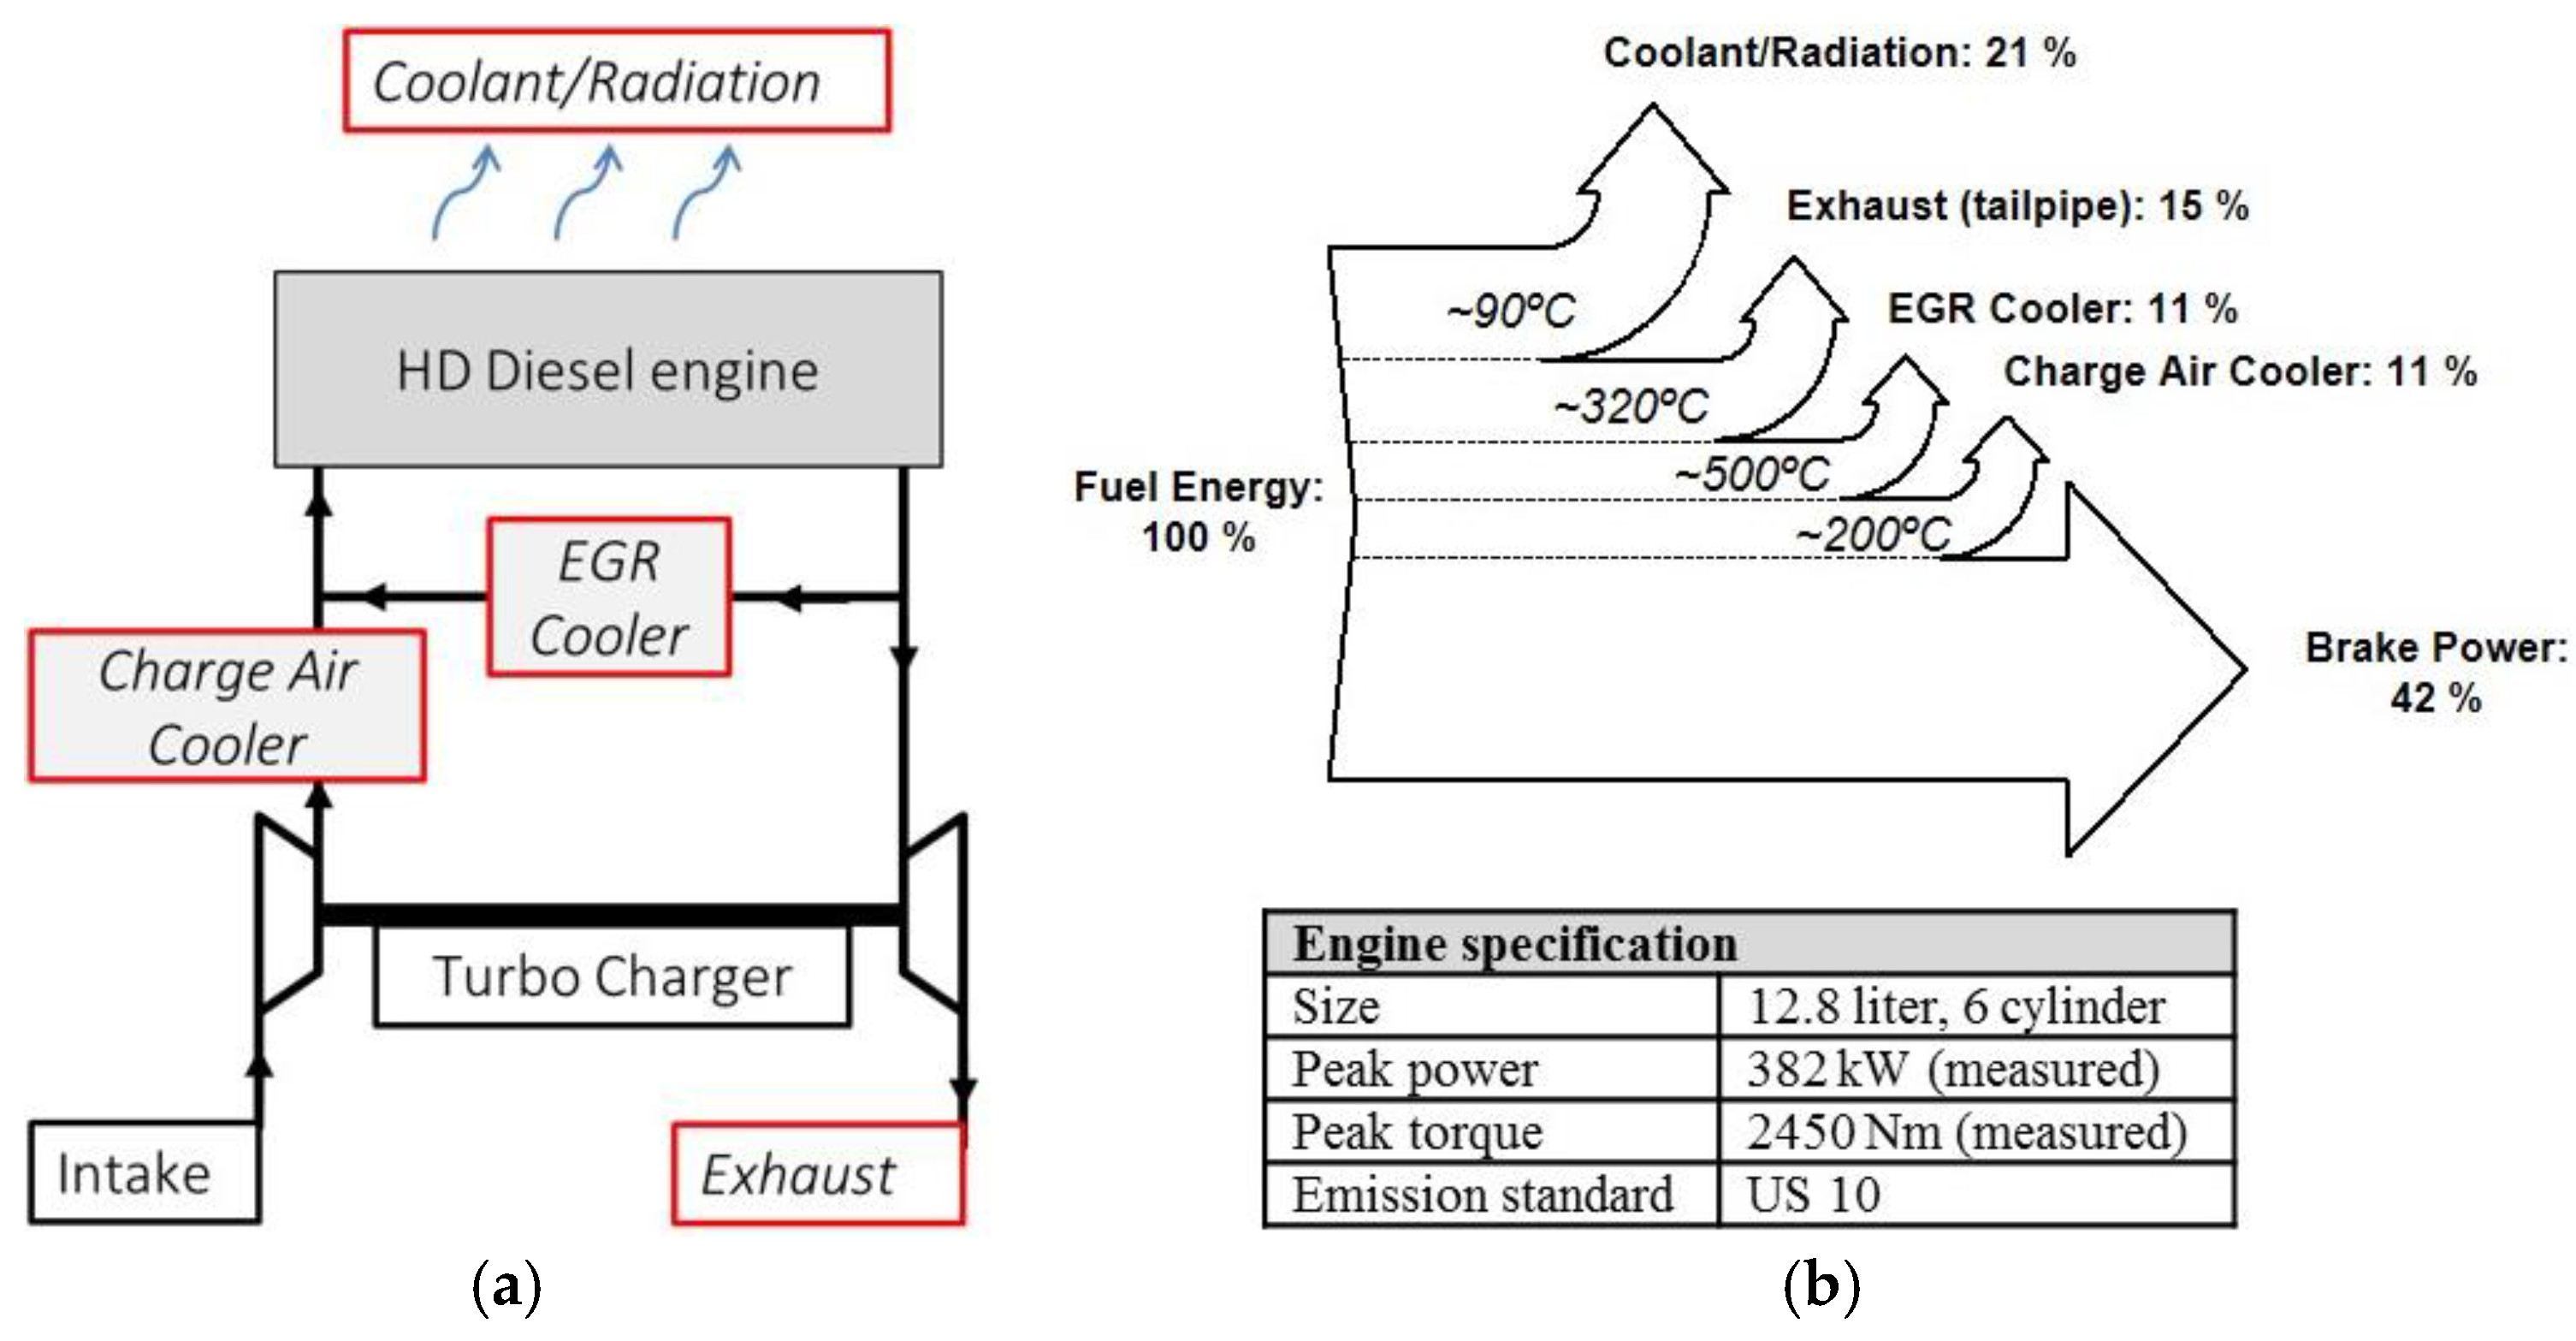 4 Stroke Petrol Engine Diagram Energies Free Full Text Of 4 Stroke Petrol Engine Diagram